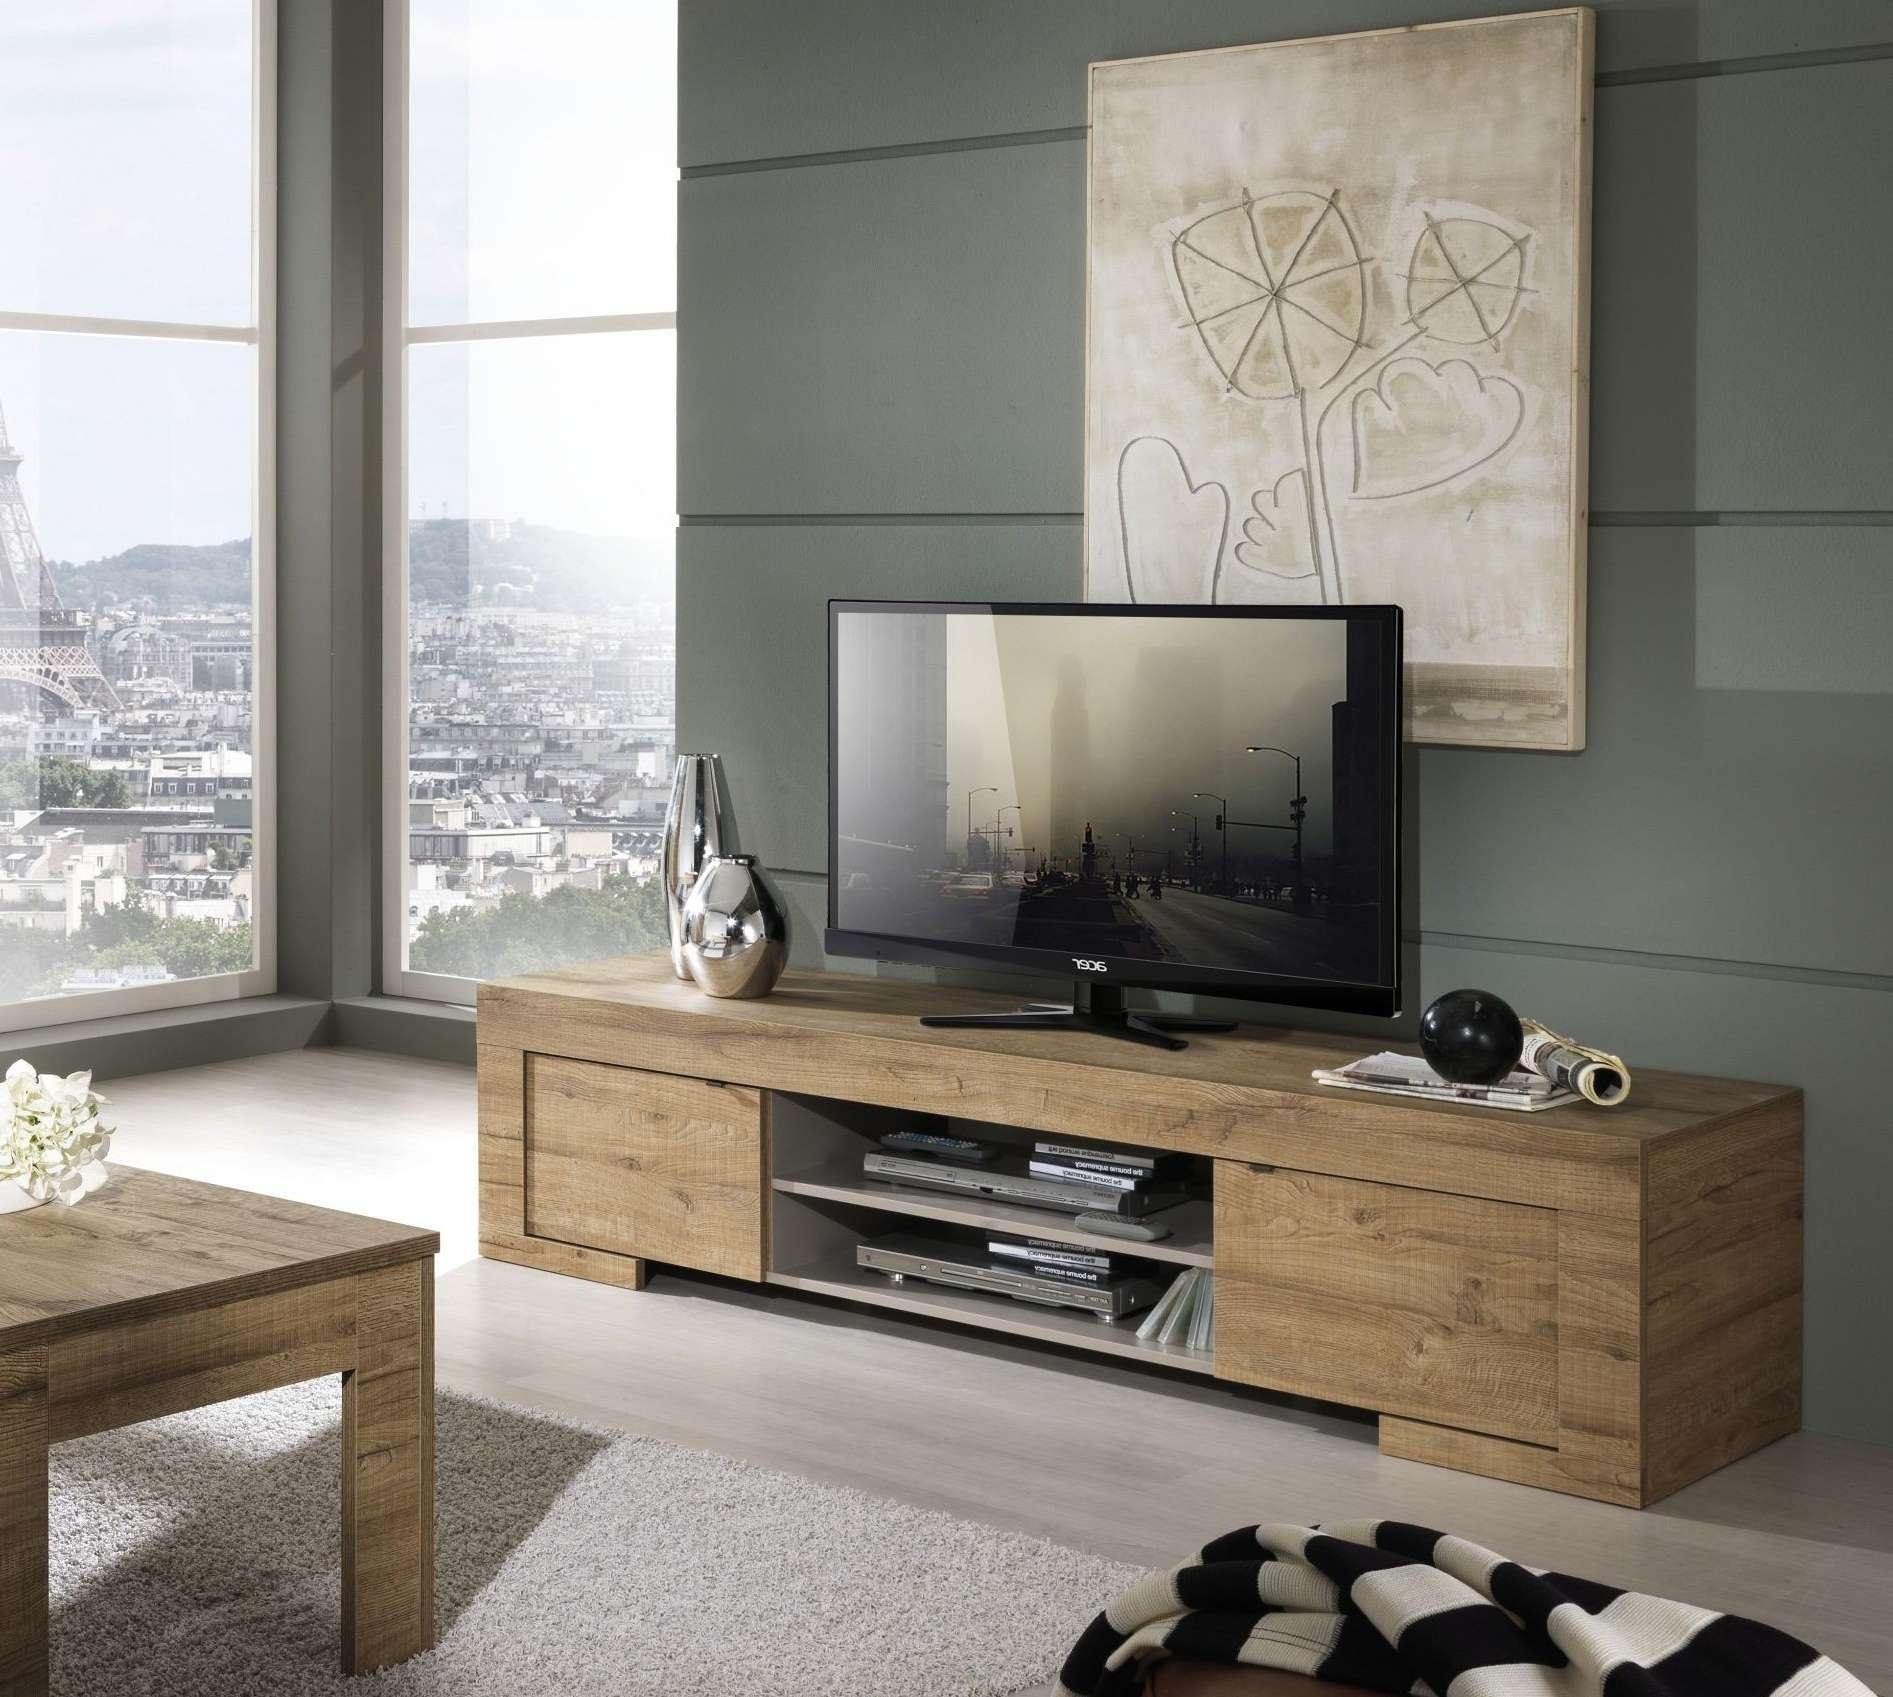 Milano Tv Stand Buy Online At Best Price – Sohomod For Milano Tv Stands (View 2 of 20)